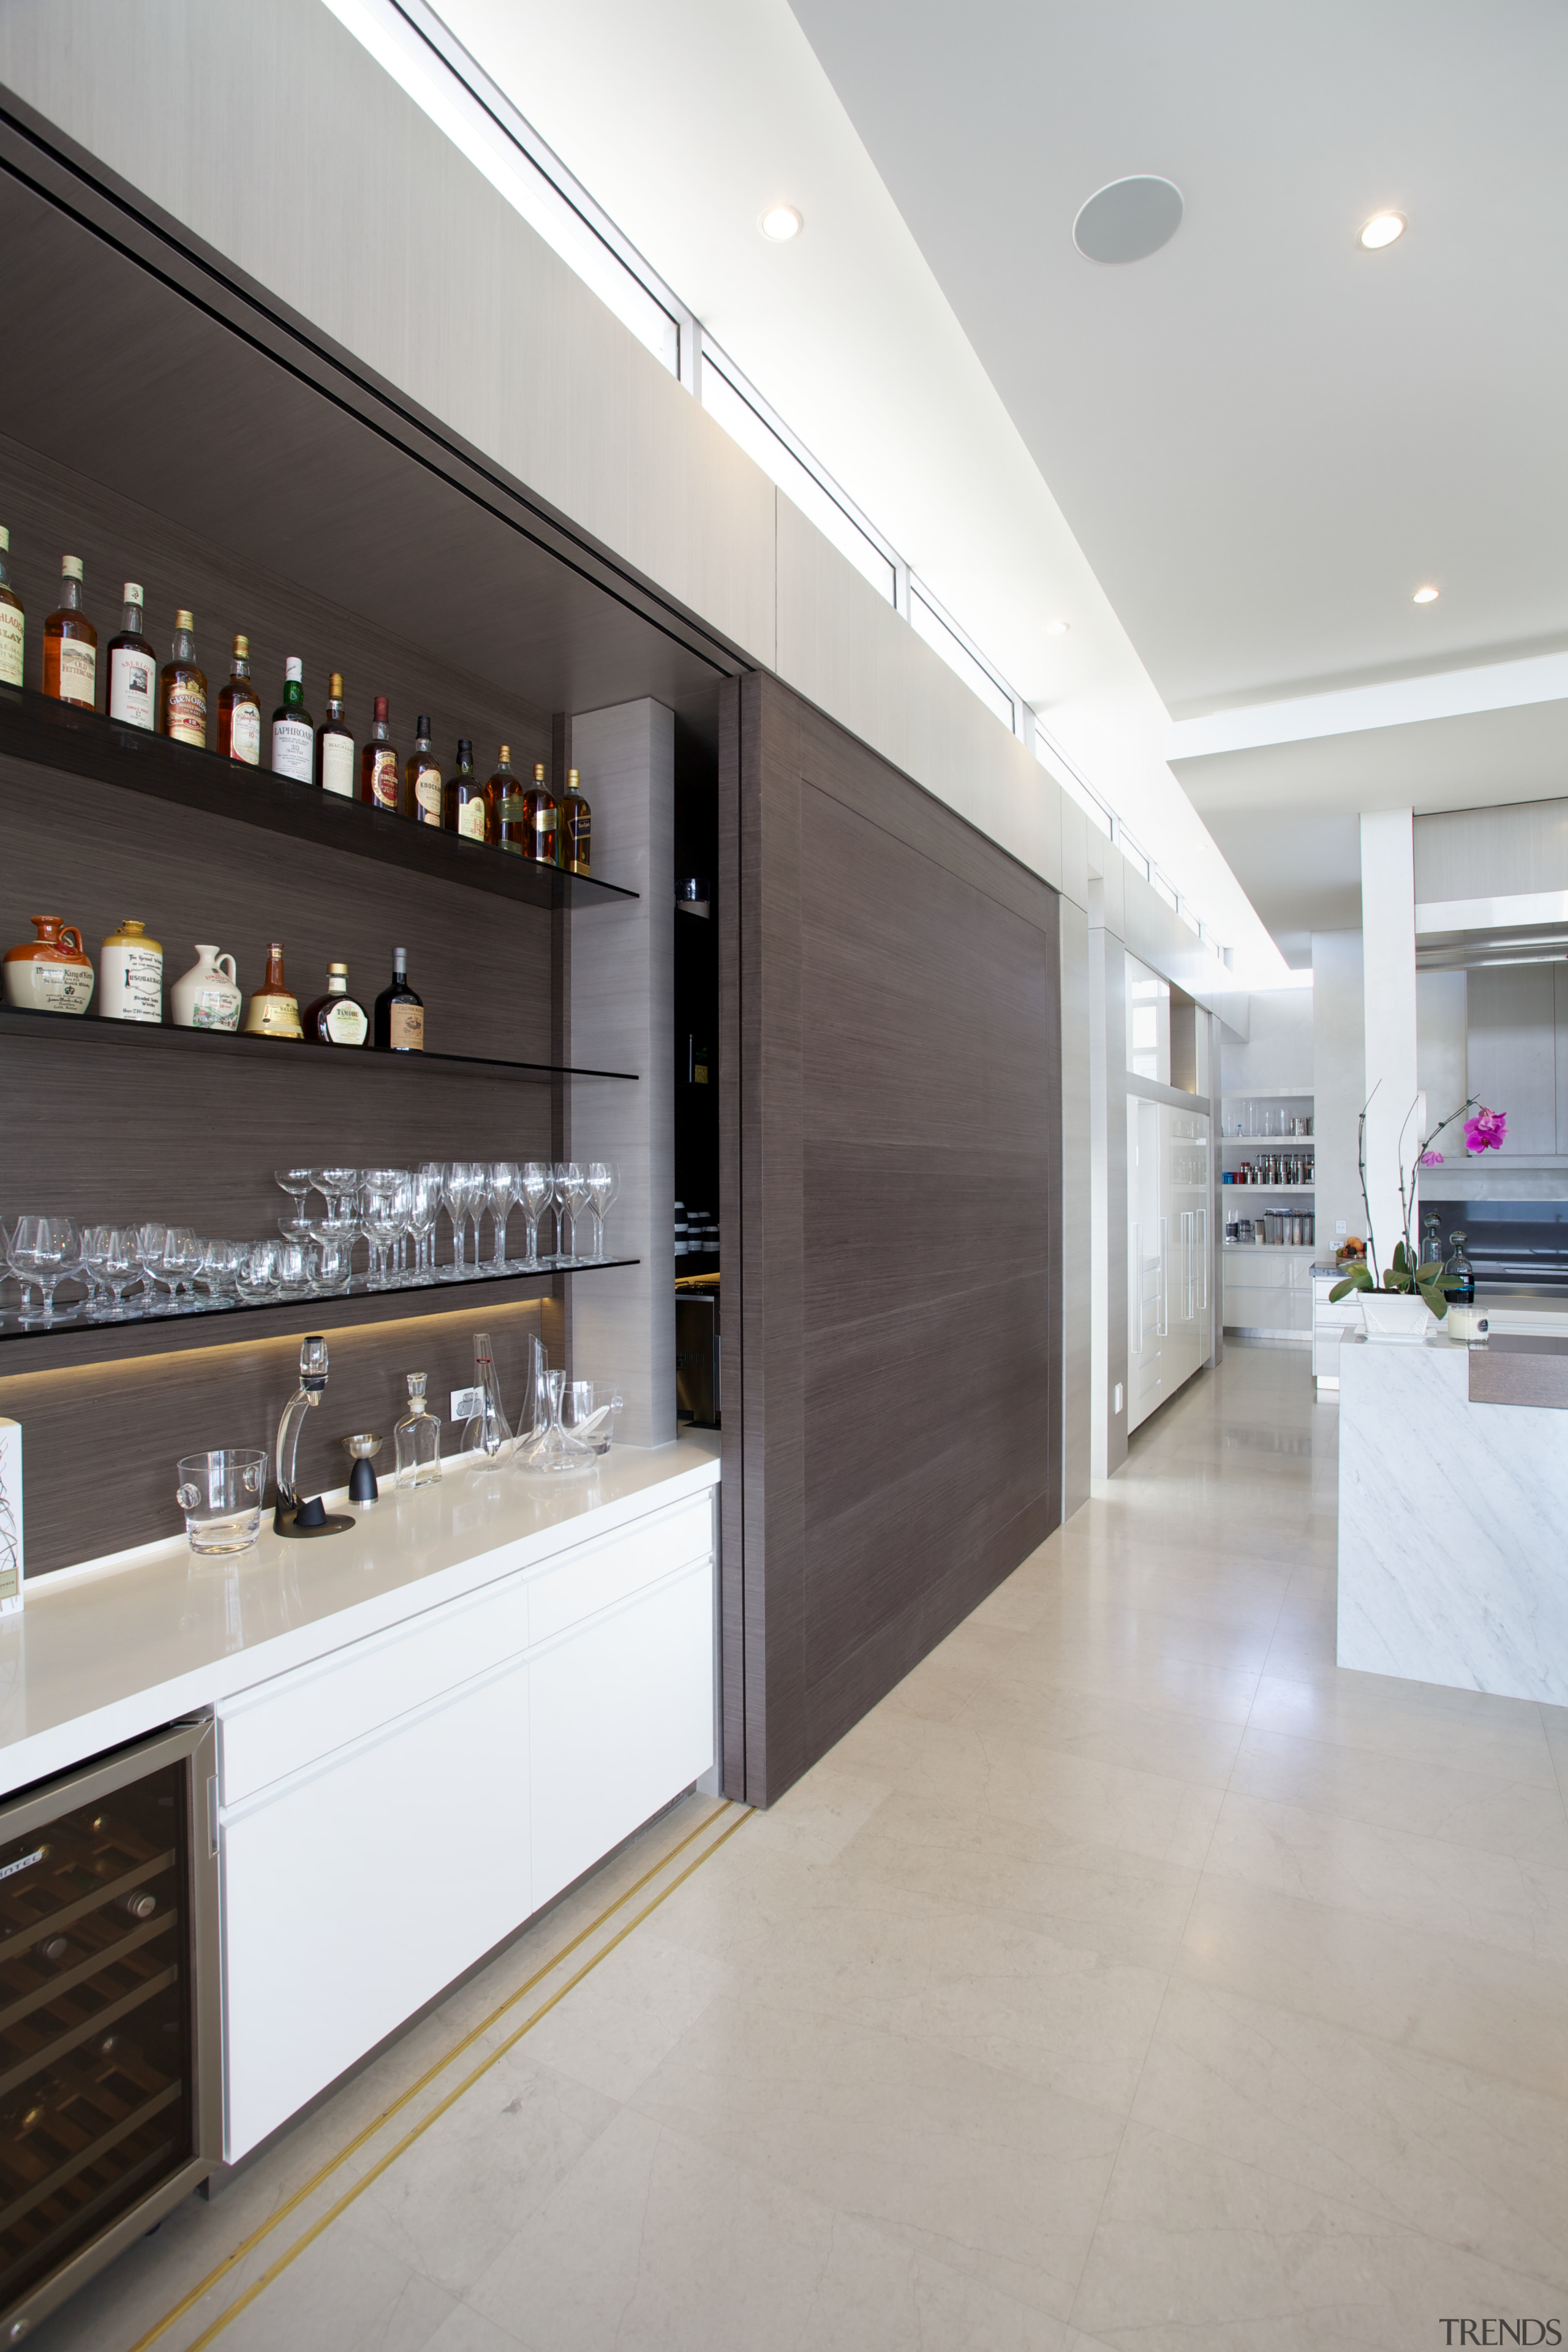 Large sliding timber veneer doors conceal a fully countertop, interior design, kitchen, gray, white